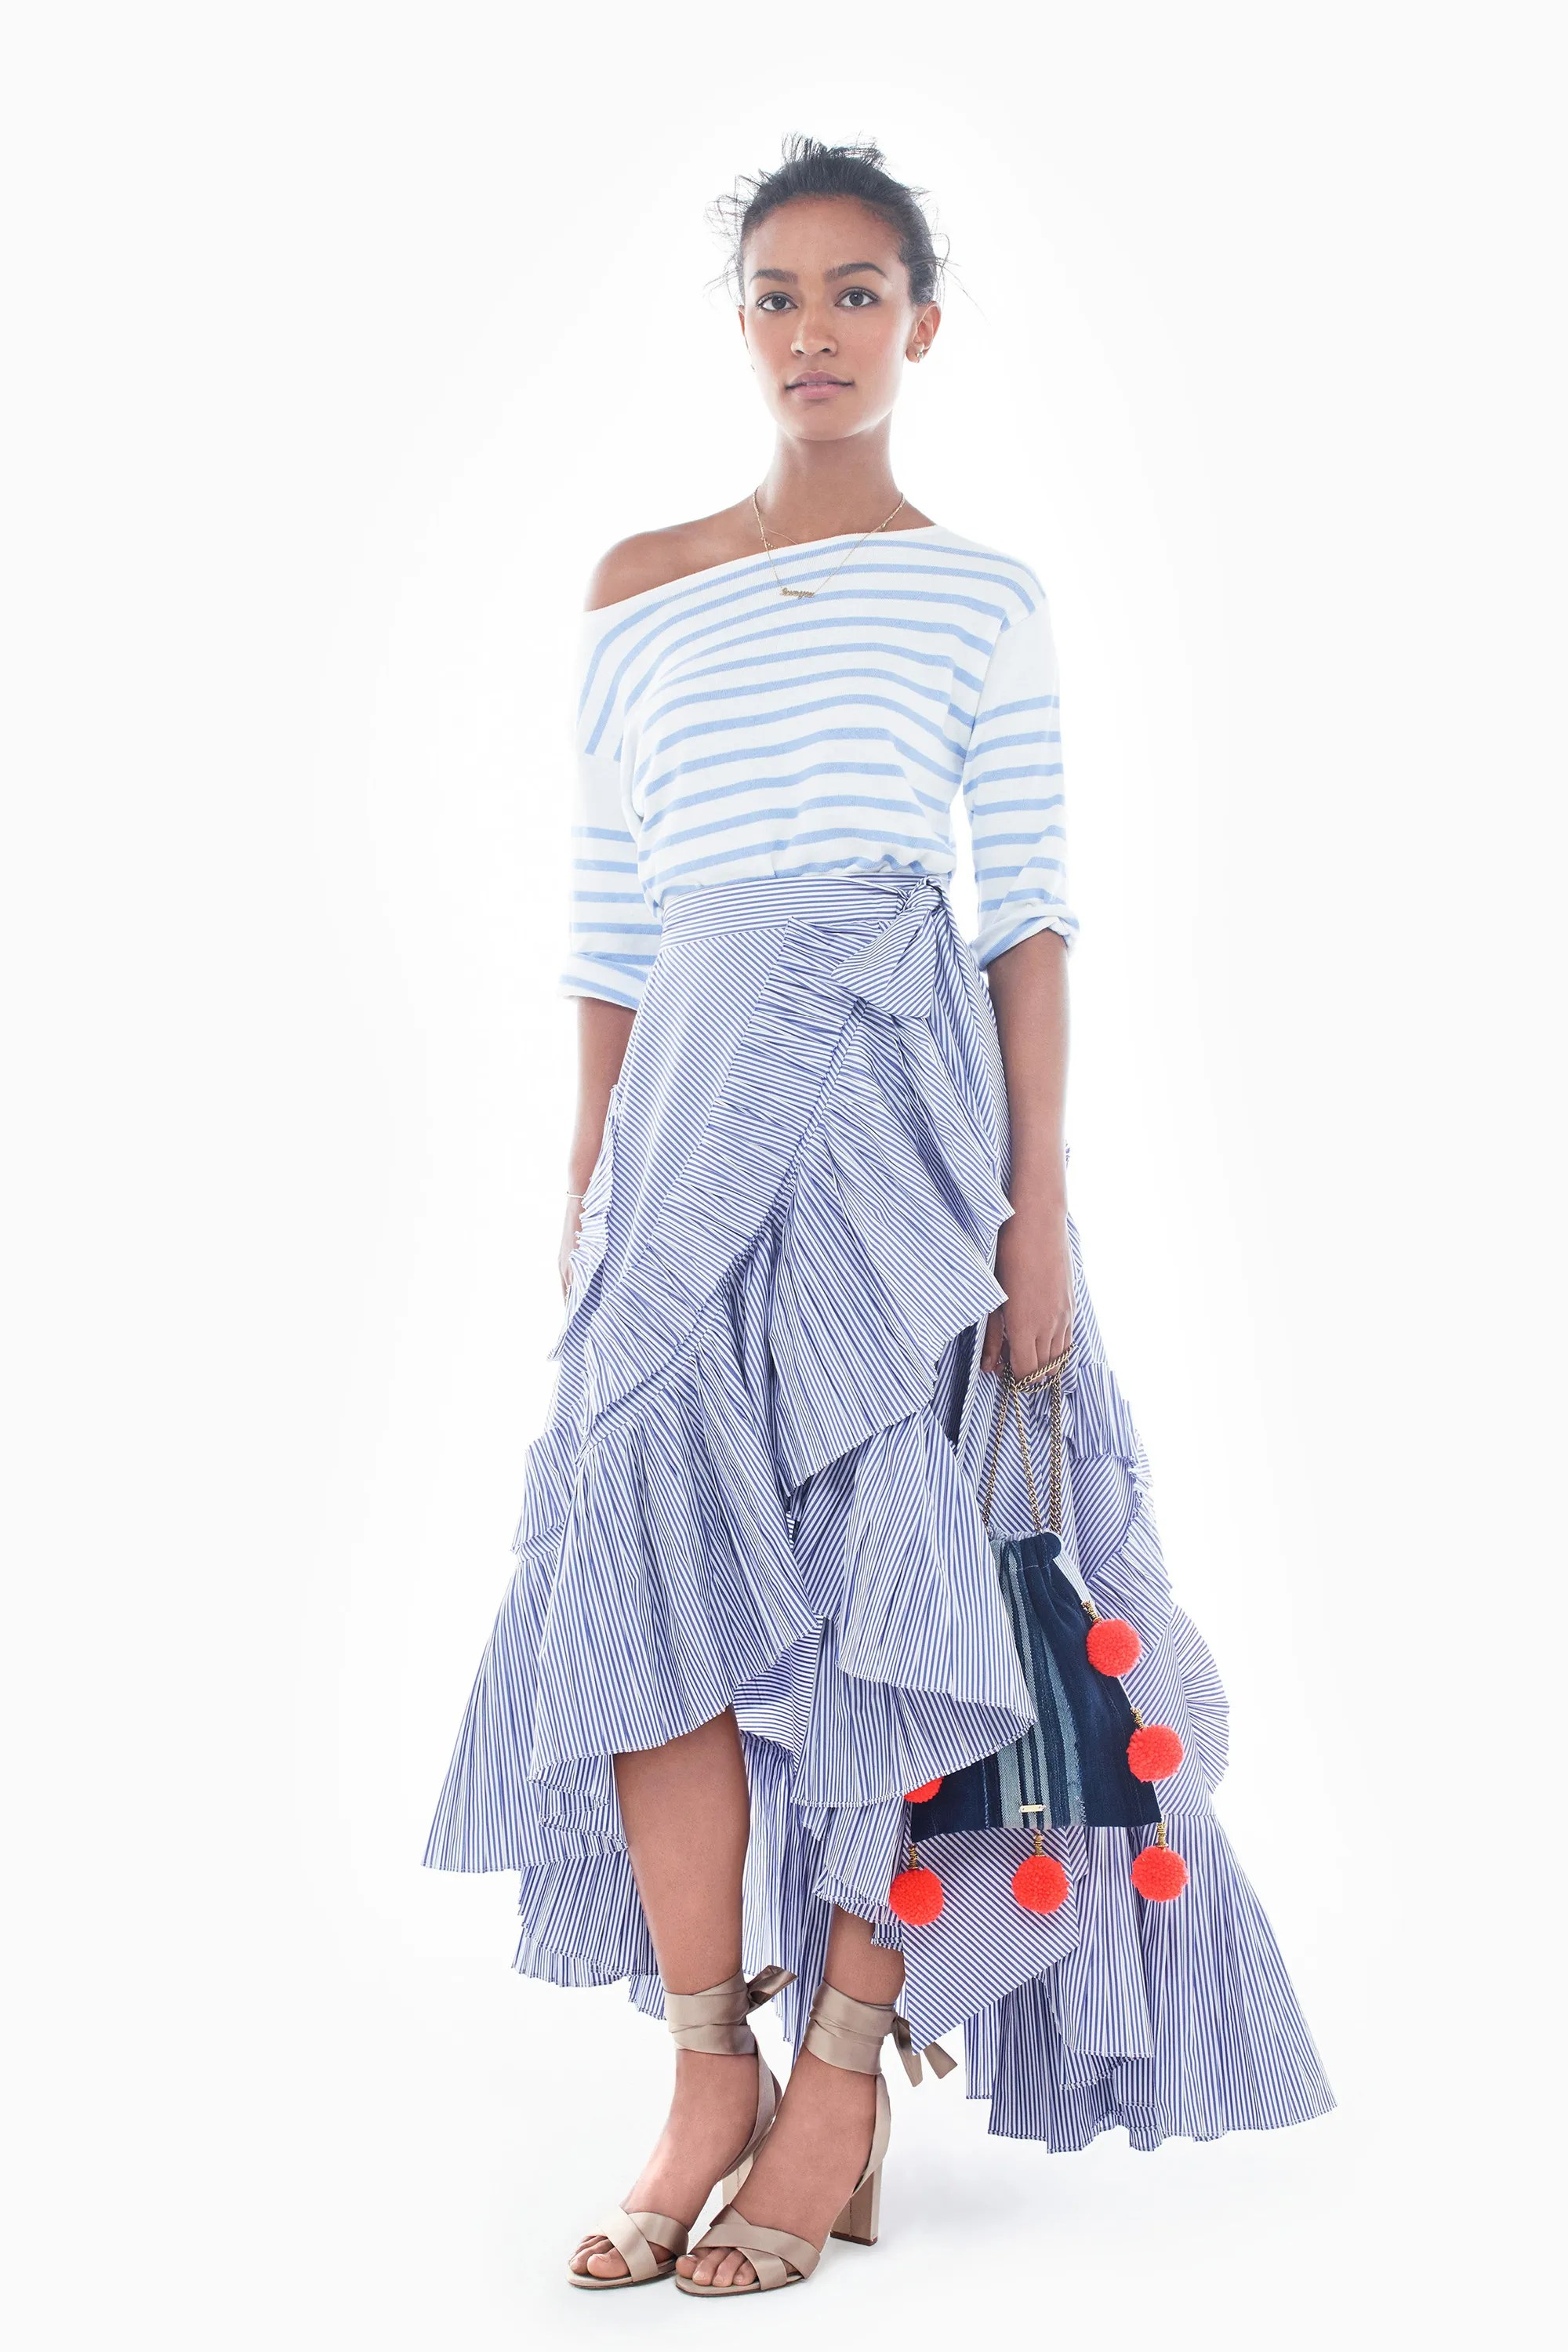 JCrew Spring 2017 Ready To Wear Collection Vogue